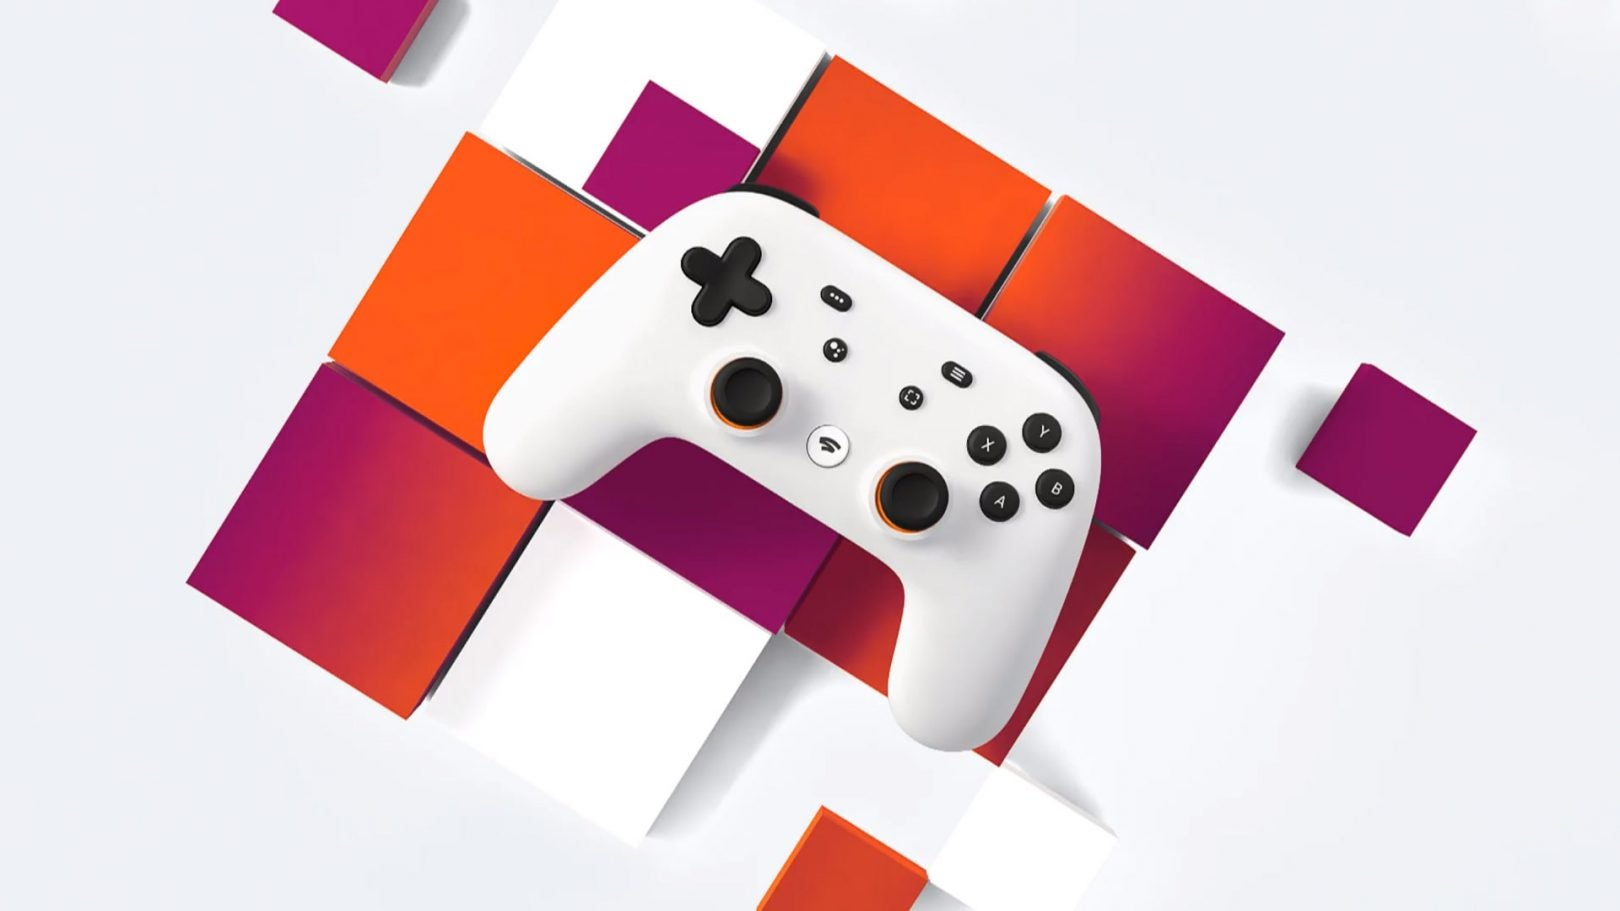 Google Stadia buyers might not receive their devices on launch day